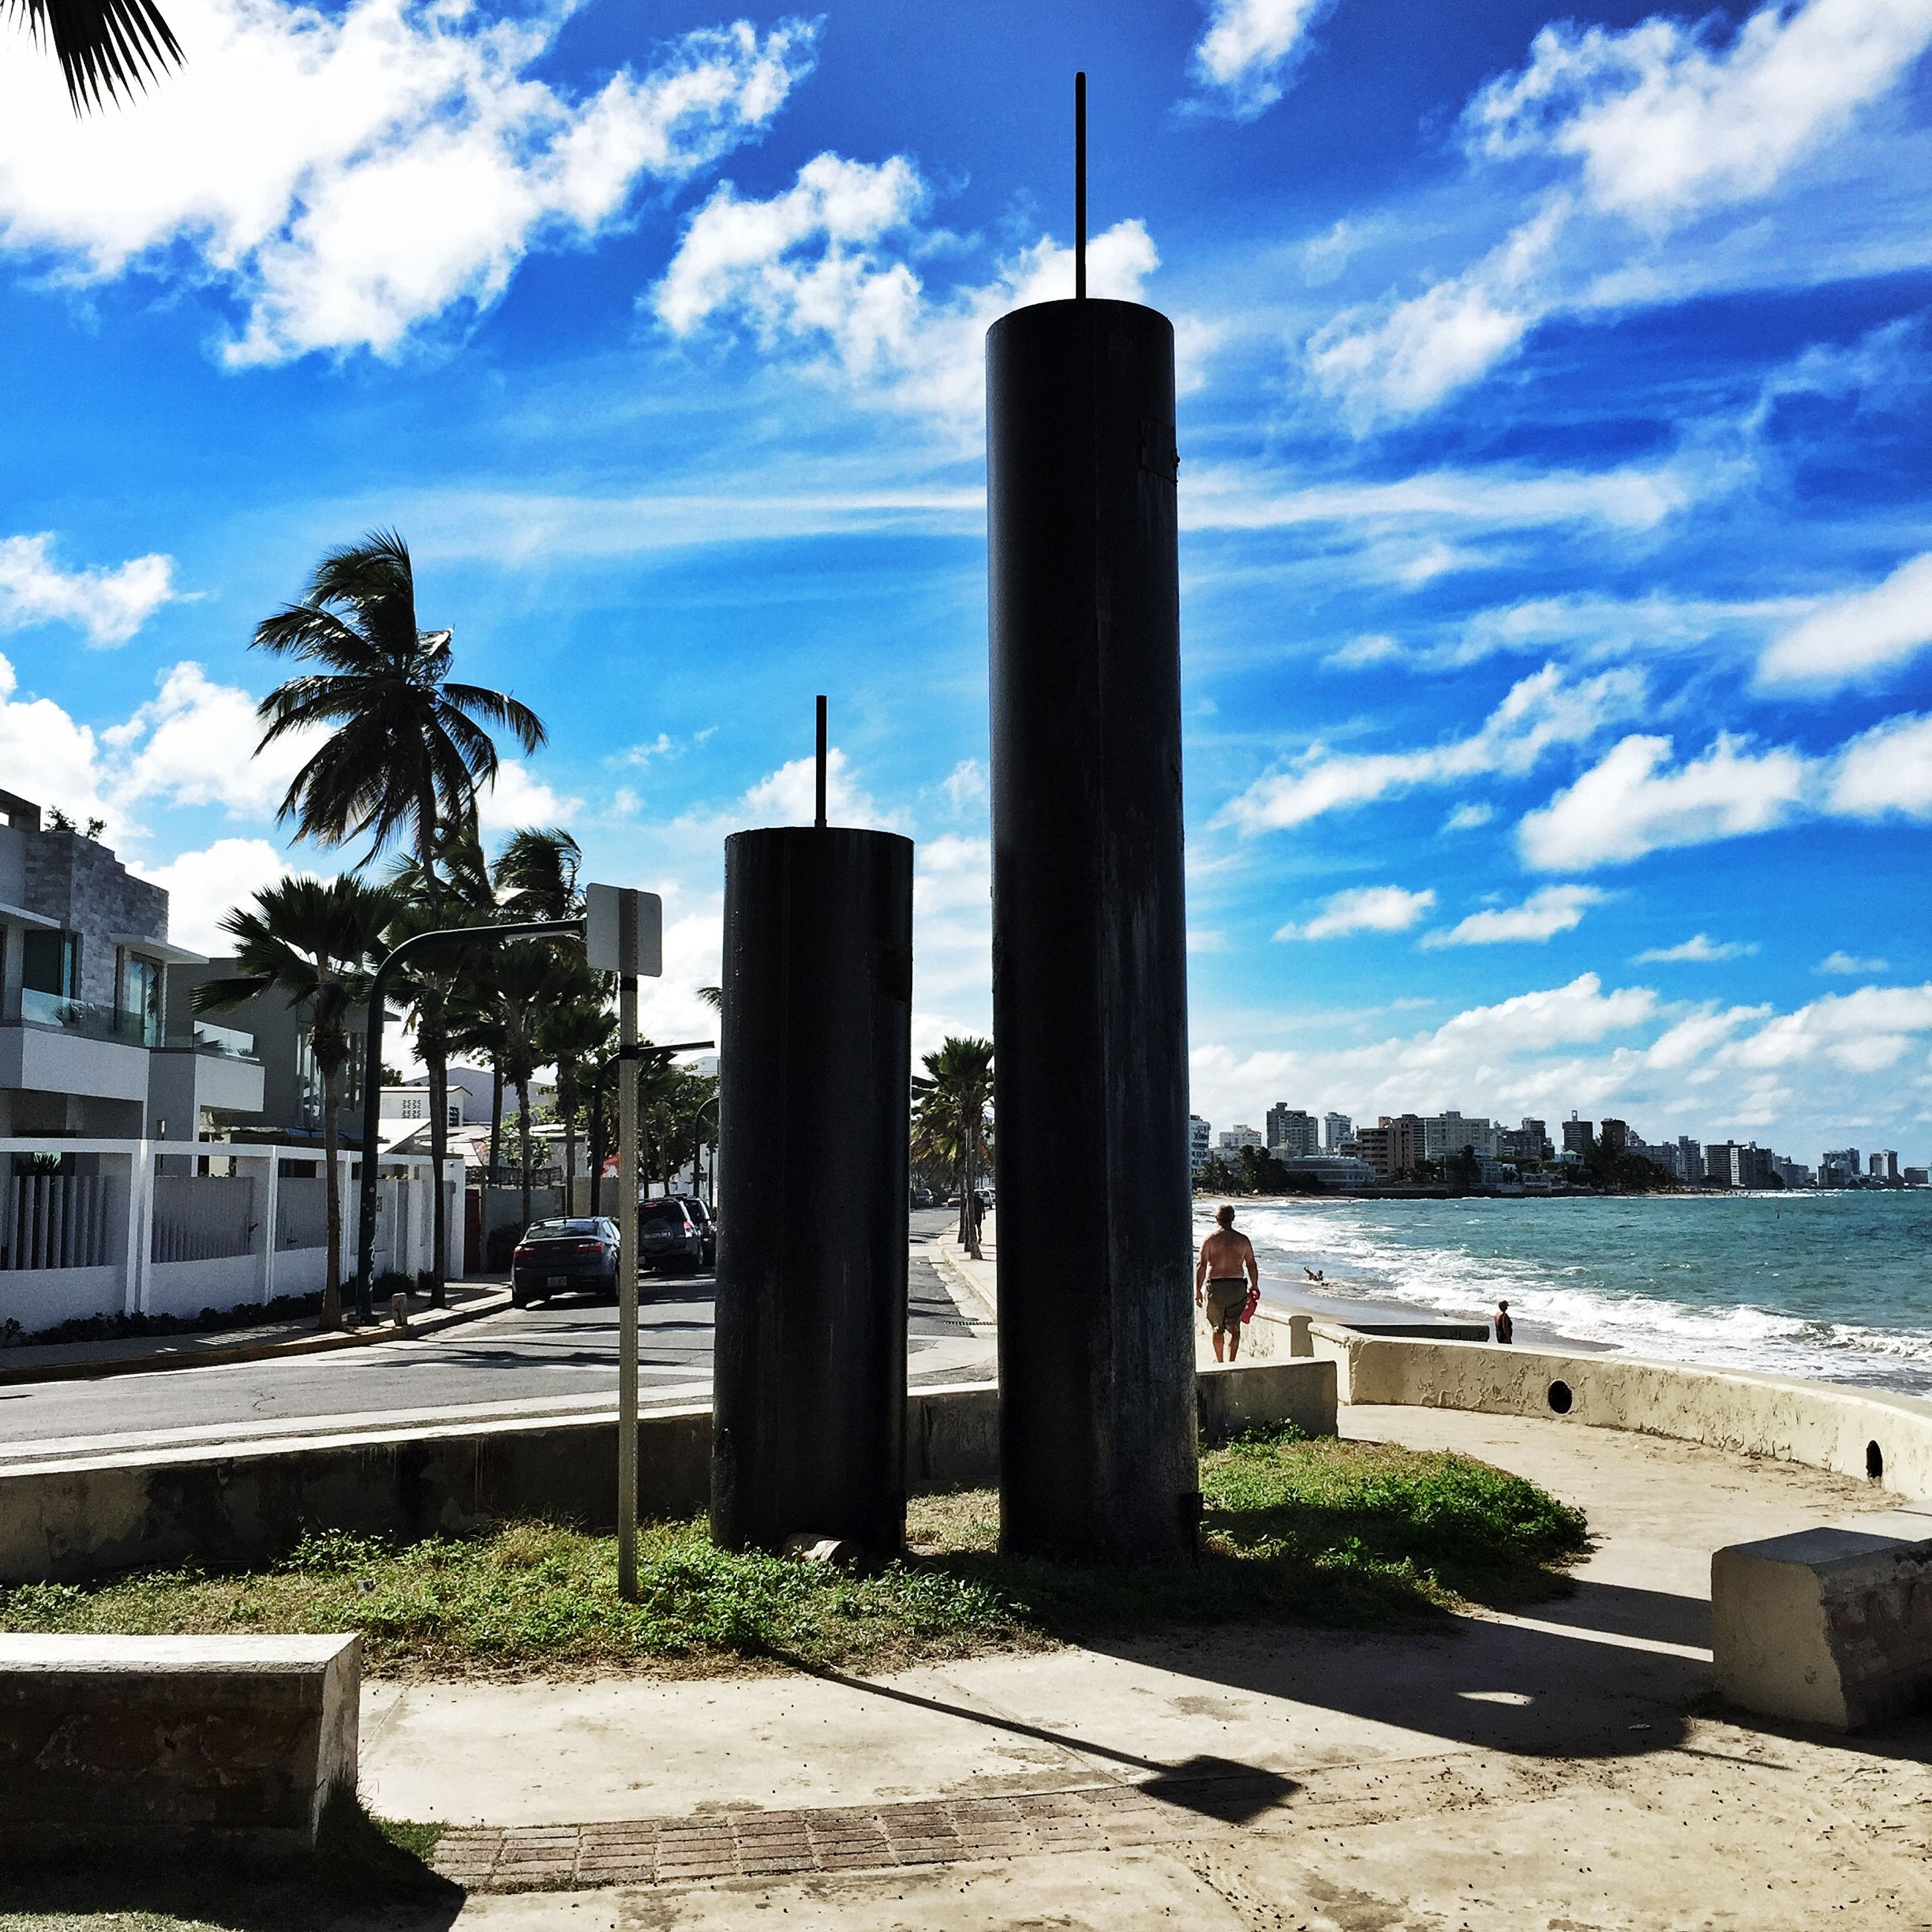 building exterior, sky, architecture, built structure, water, cloud - sky, cloud, sea, city, tree, sunlight, tower, day, beach, river, blue, outdoors, tall - high, incidental people, shore